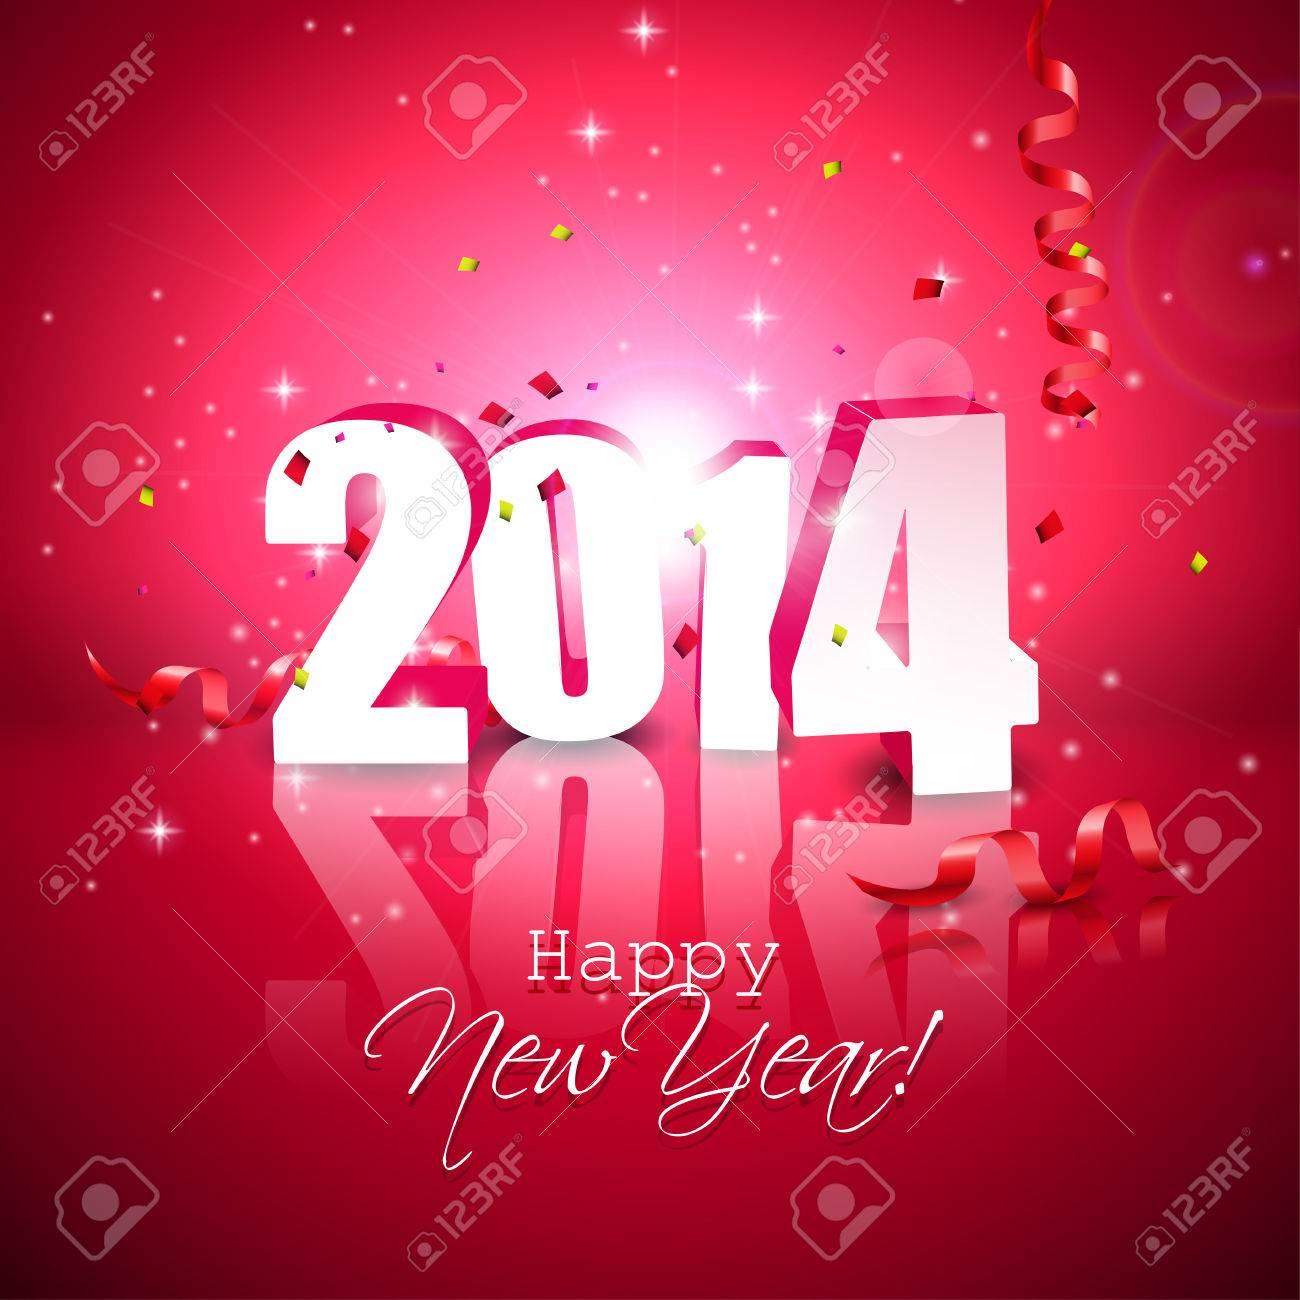 Happy new year 2014 modern red greeting card royalty free cliparts happy new year 2014 modern red greeting card stock vector 22860876 m4hsunfo